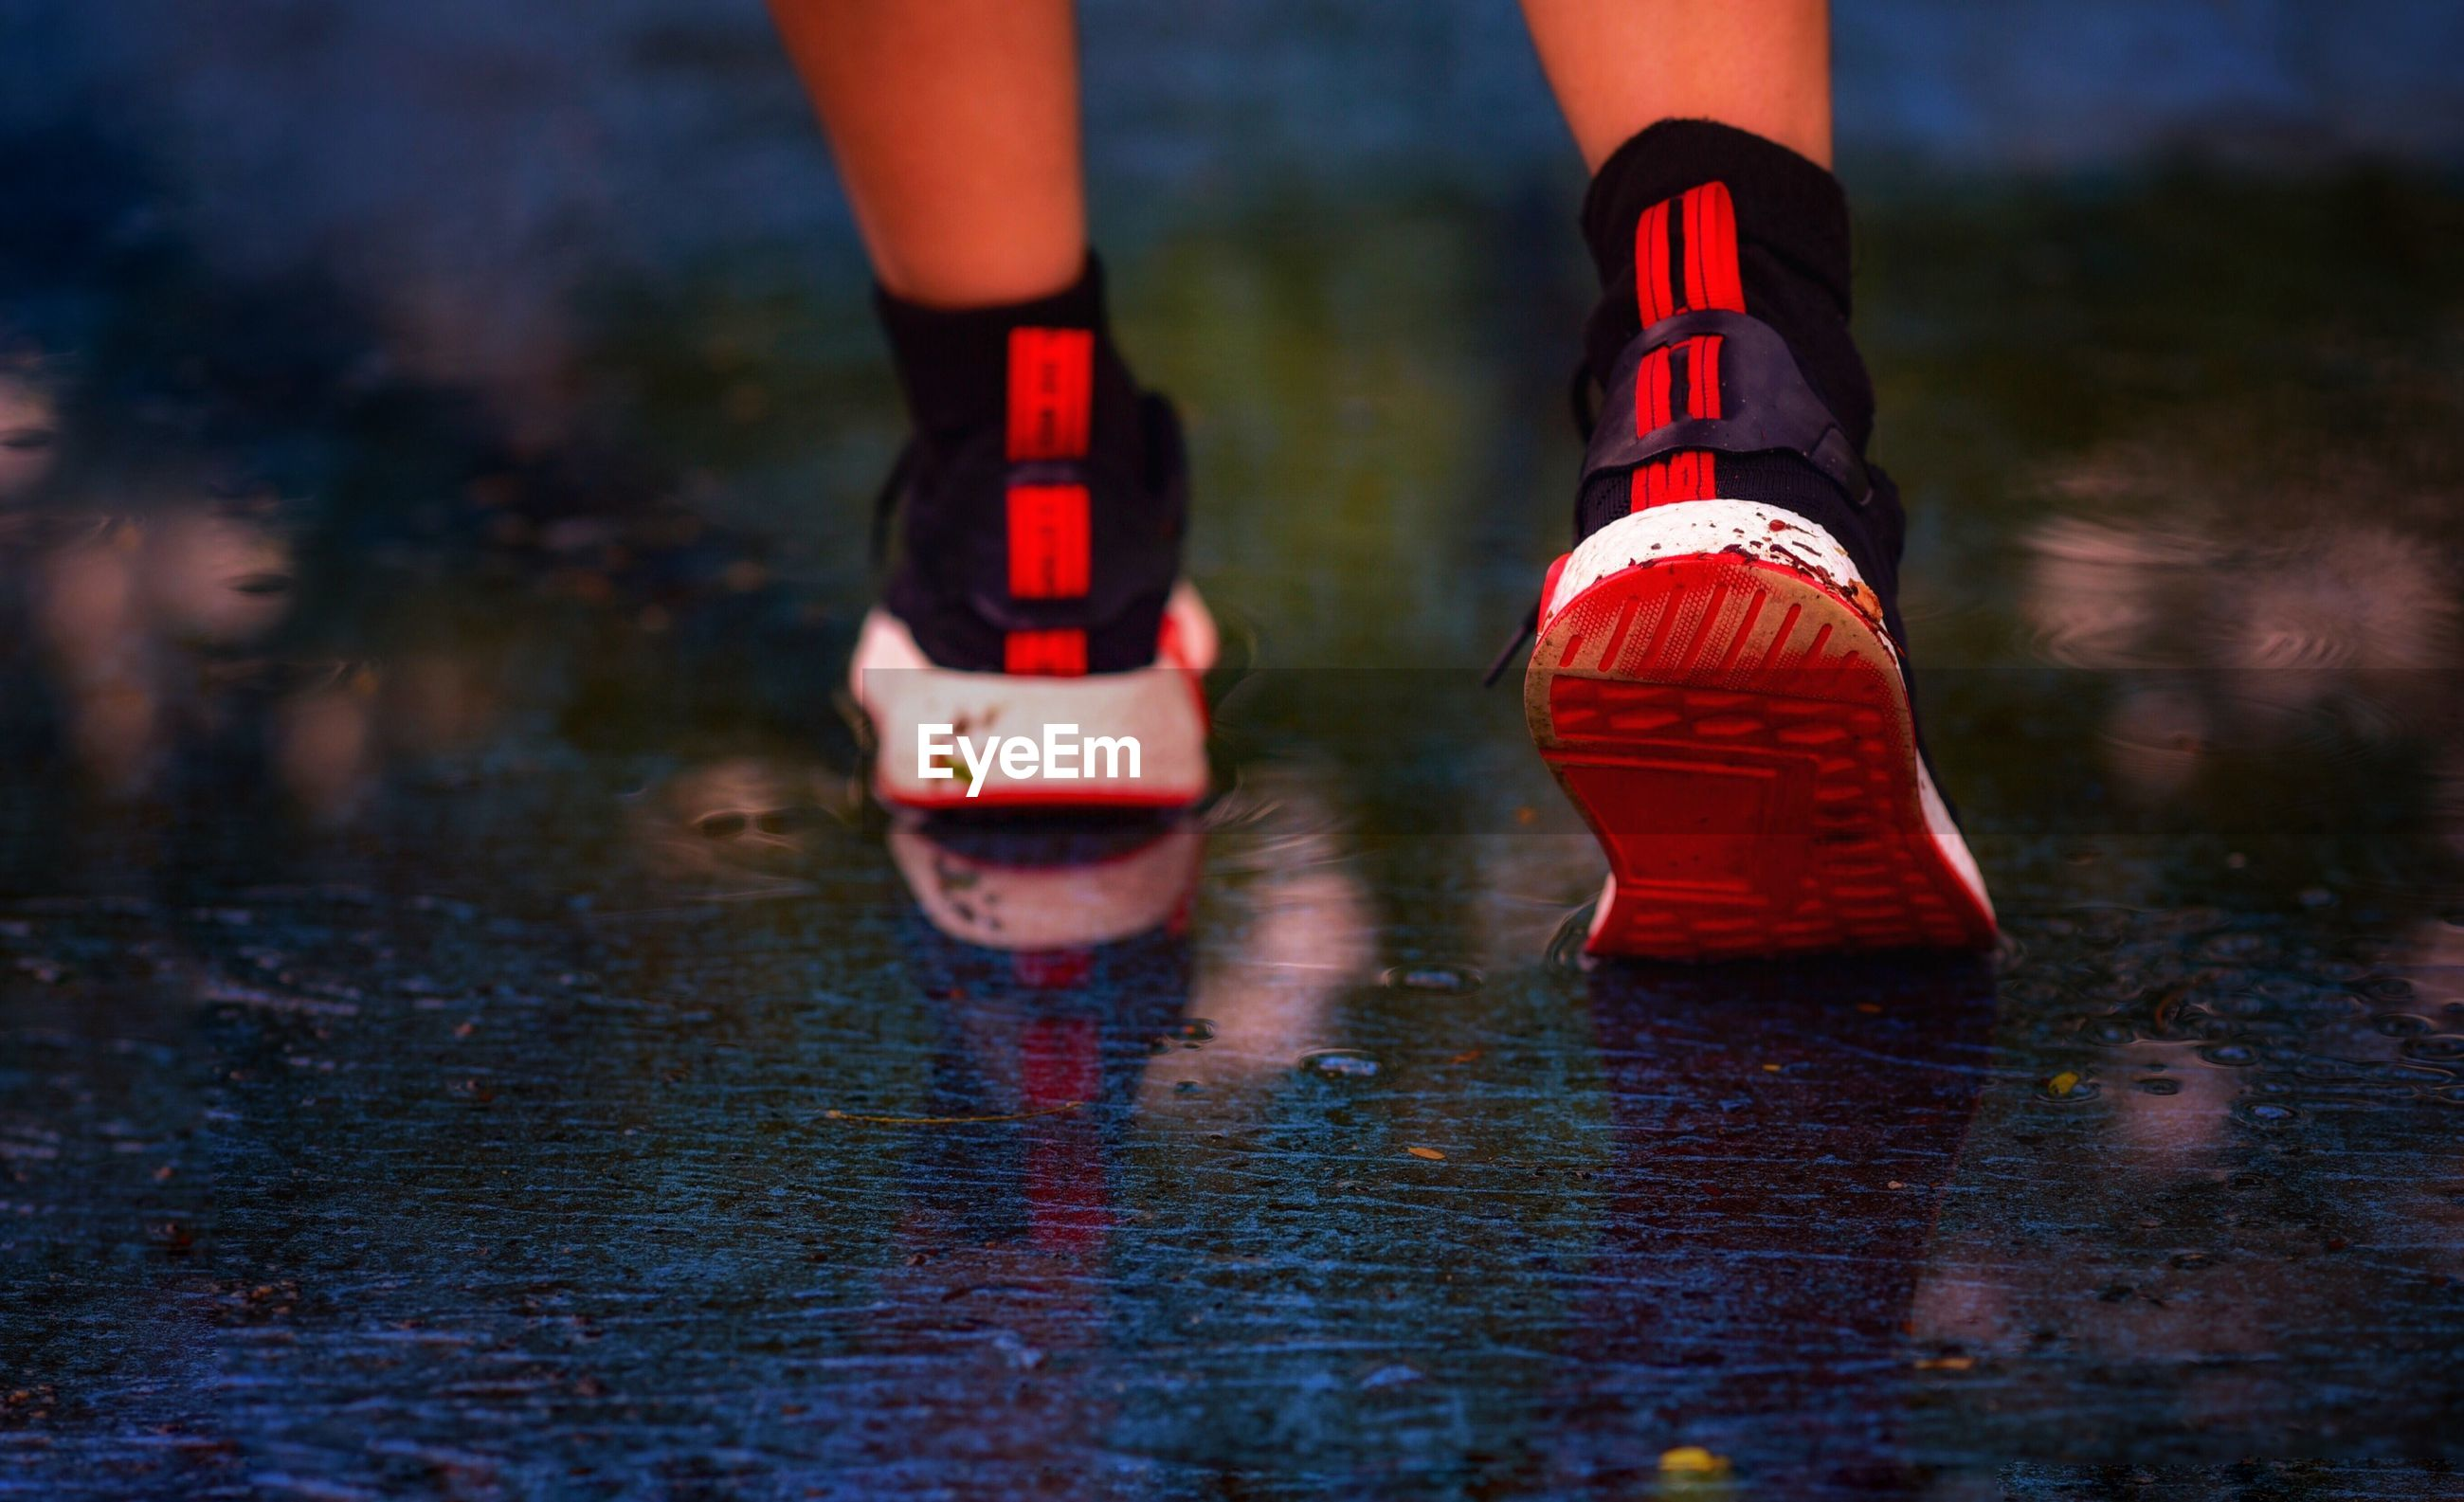 Low section of person wearing red shoes walking on wet road